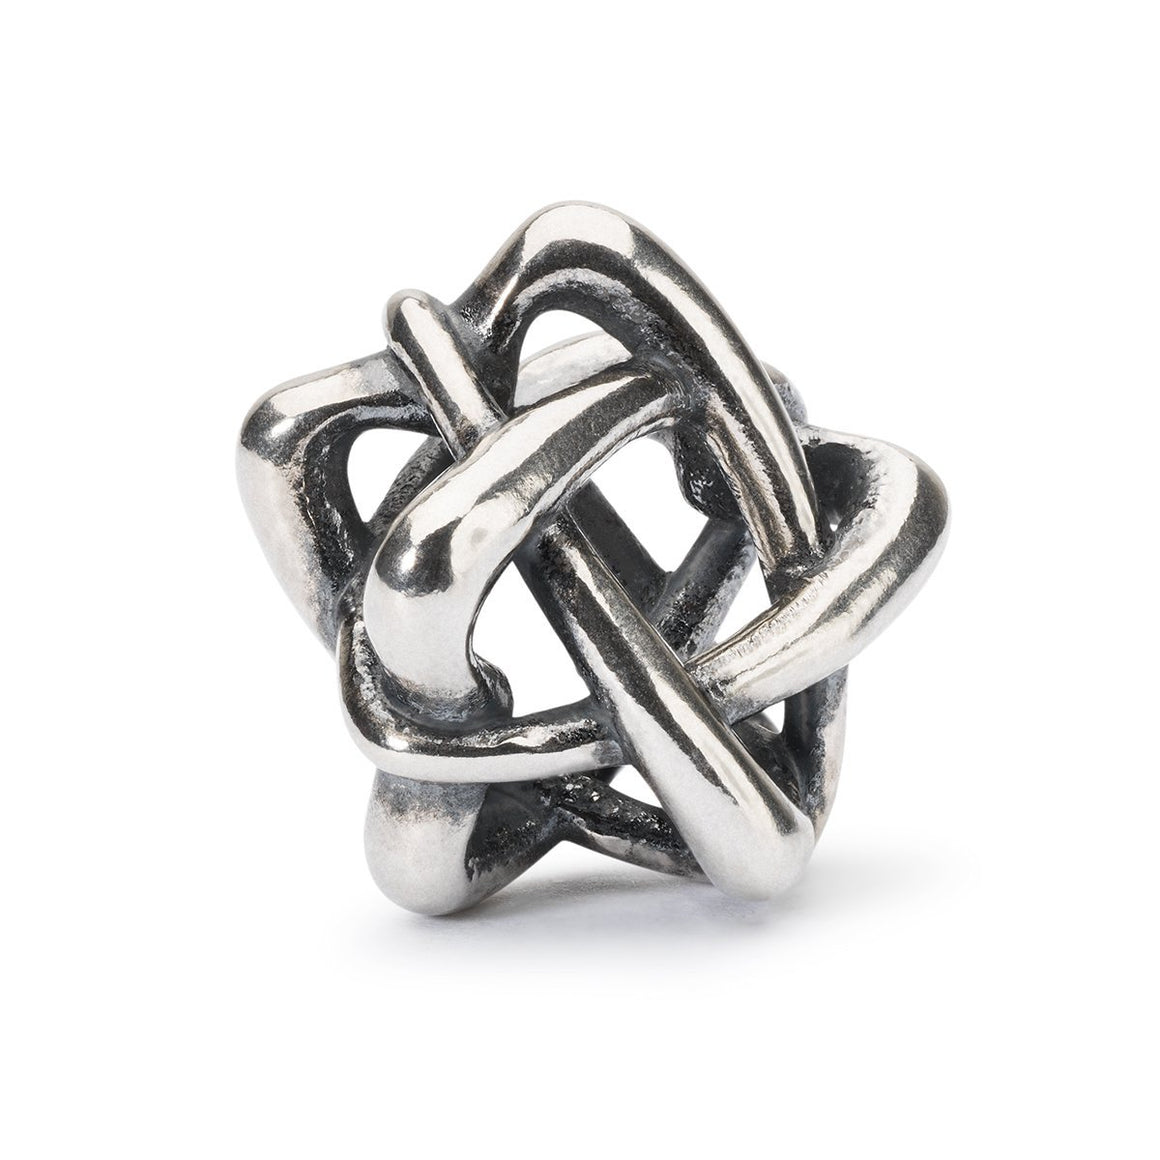 Trollbeads Come Together Silver Bead